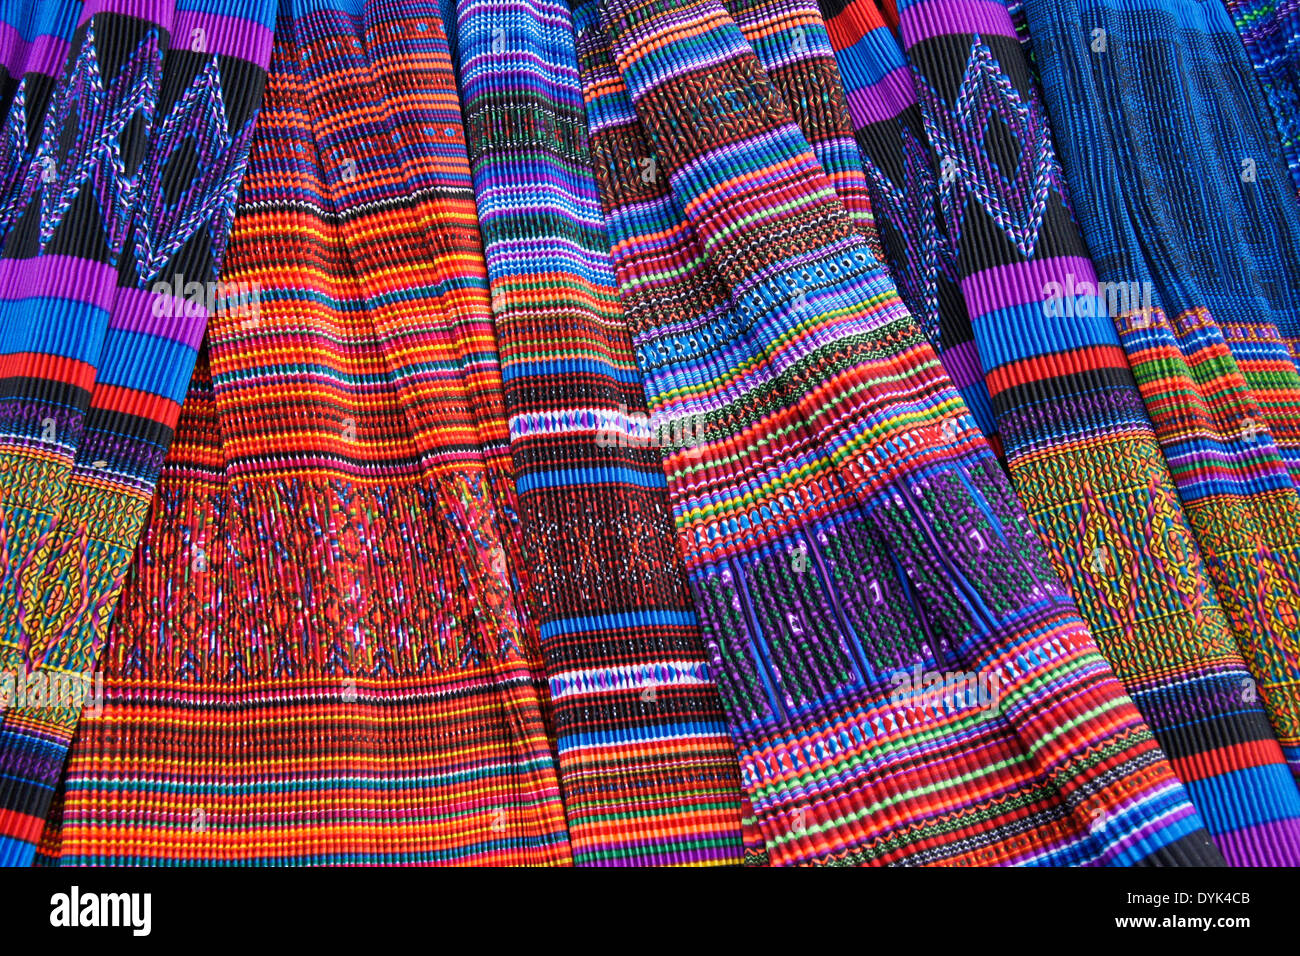 Flower Hmong pleated skirts for sale in market, Sapa (Sa Pa), North Vietnam - Stock Image